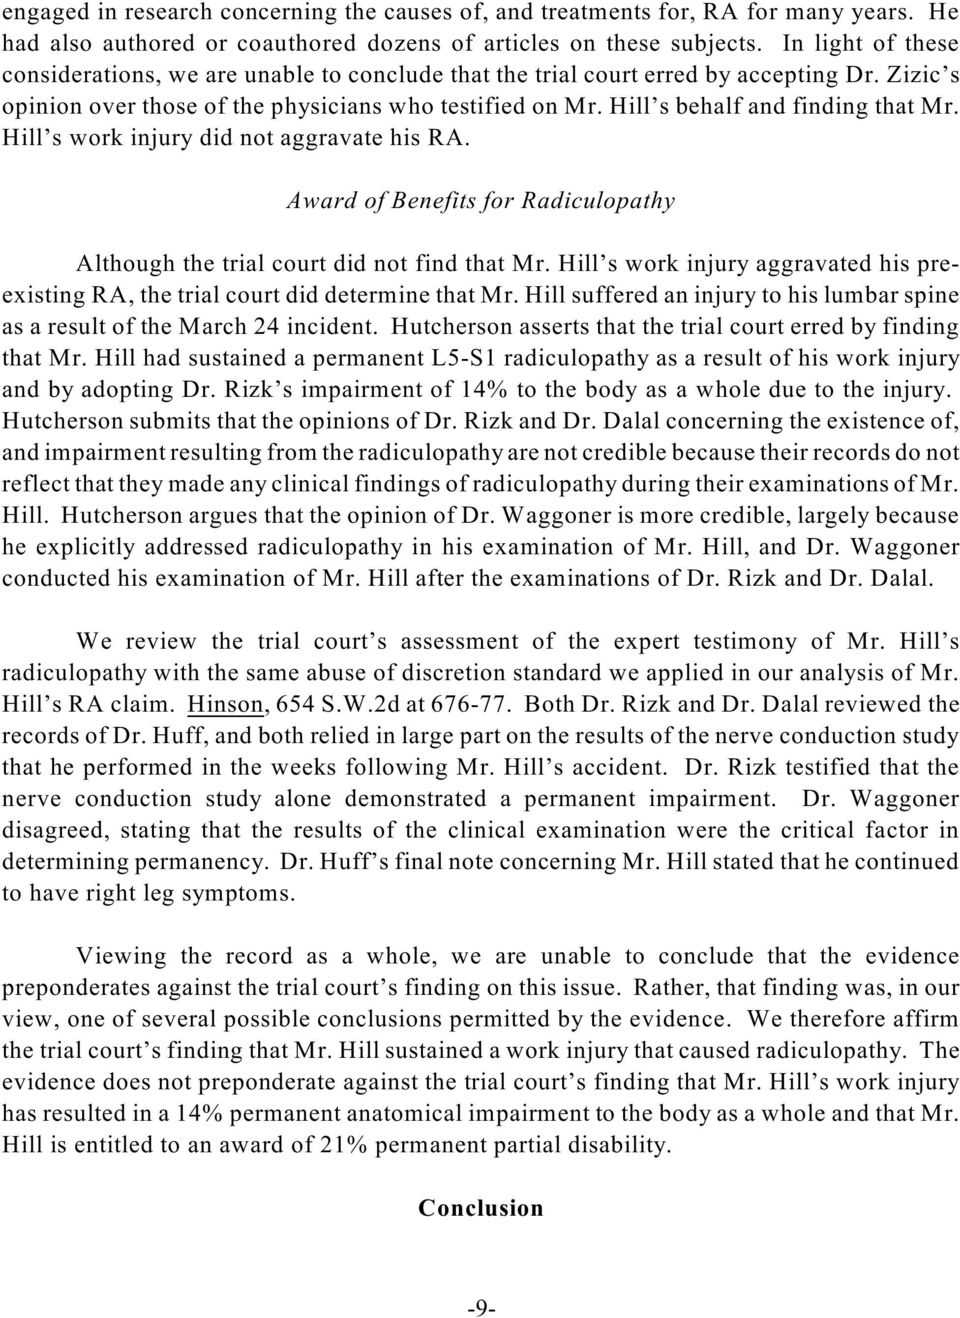 Hill s behalf and finding that Mr. Hill s work injury did not aggravate his RA. Award of Benefits for Radiculopathy Although the trial court did not find that Mr.